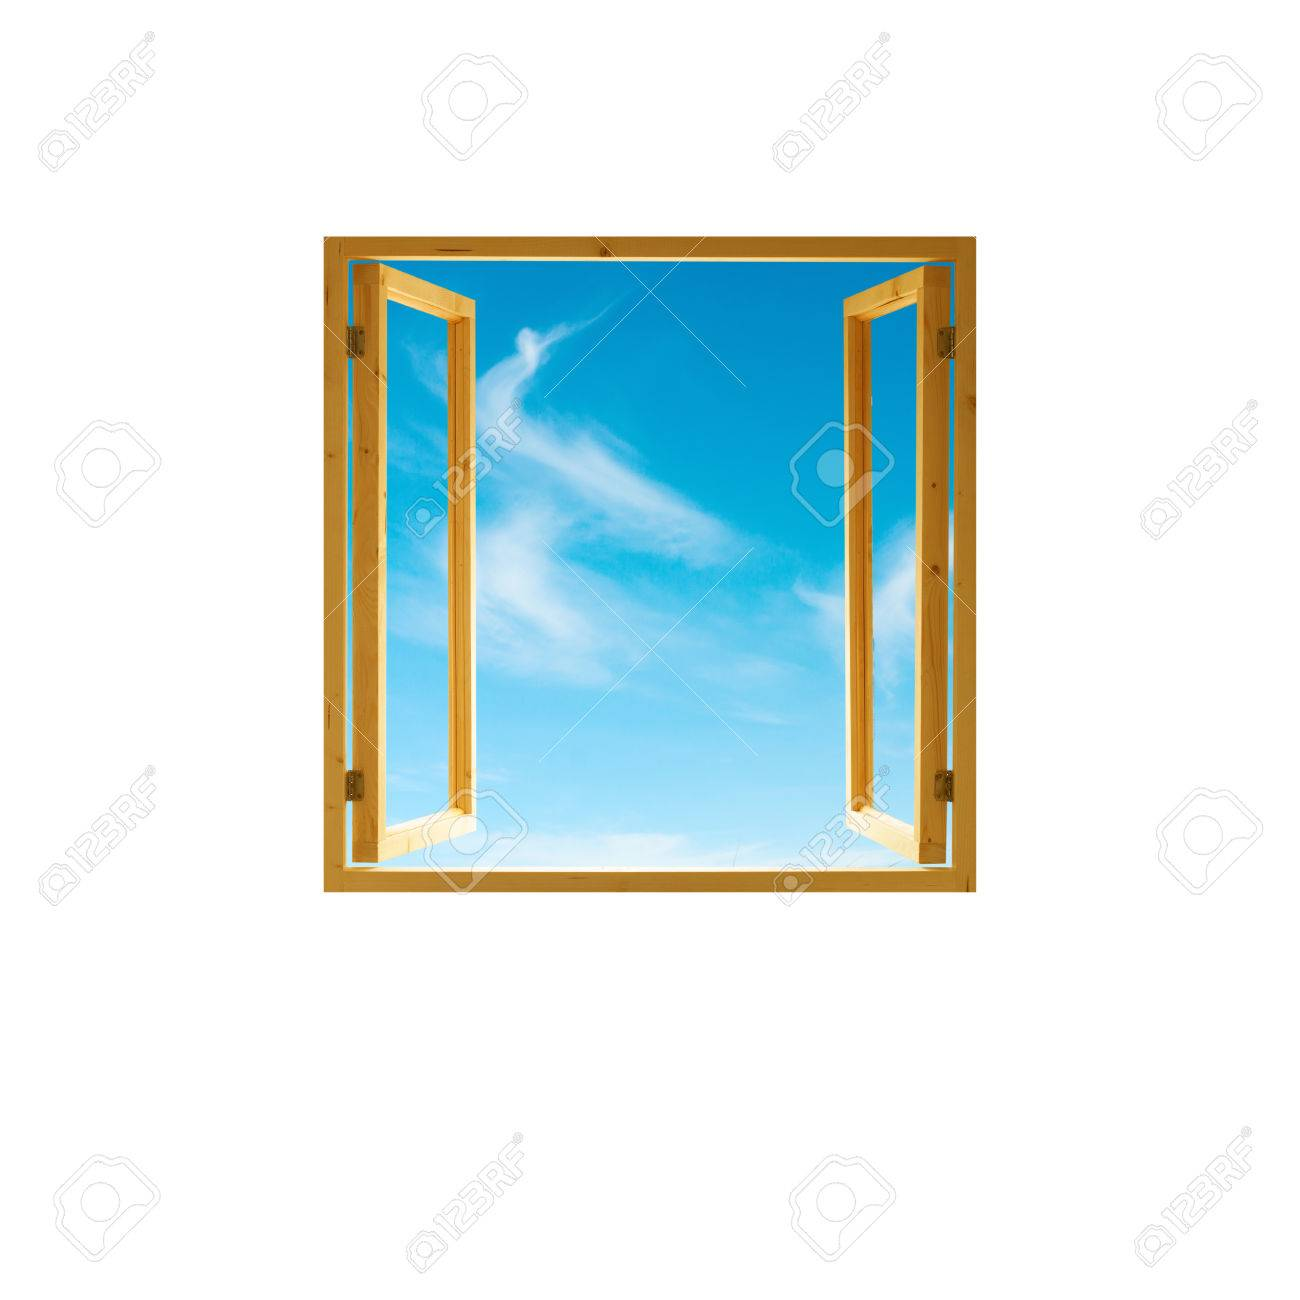 Window Frame, Open Wooden, Sky View, Isolated On White Background Imagens    43699789